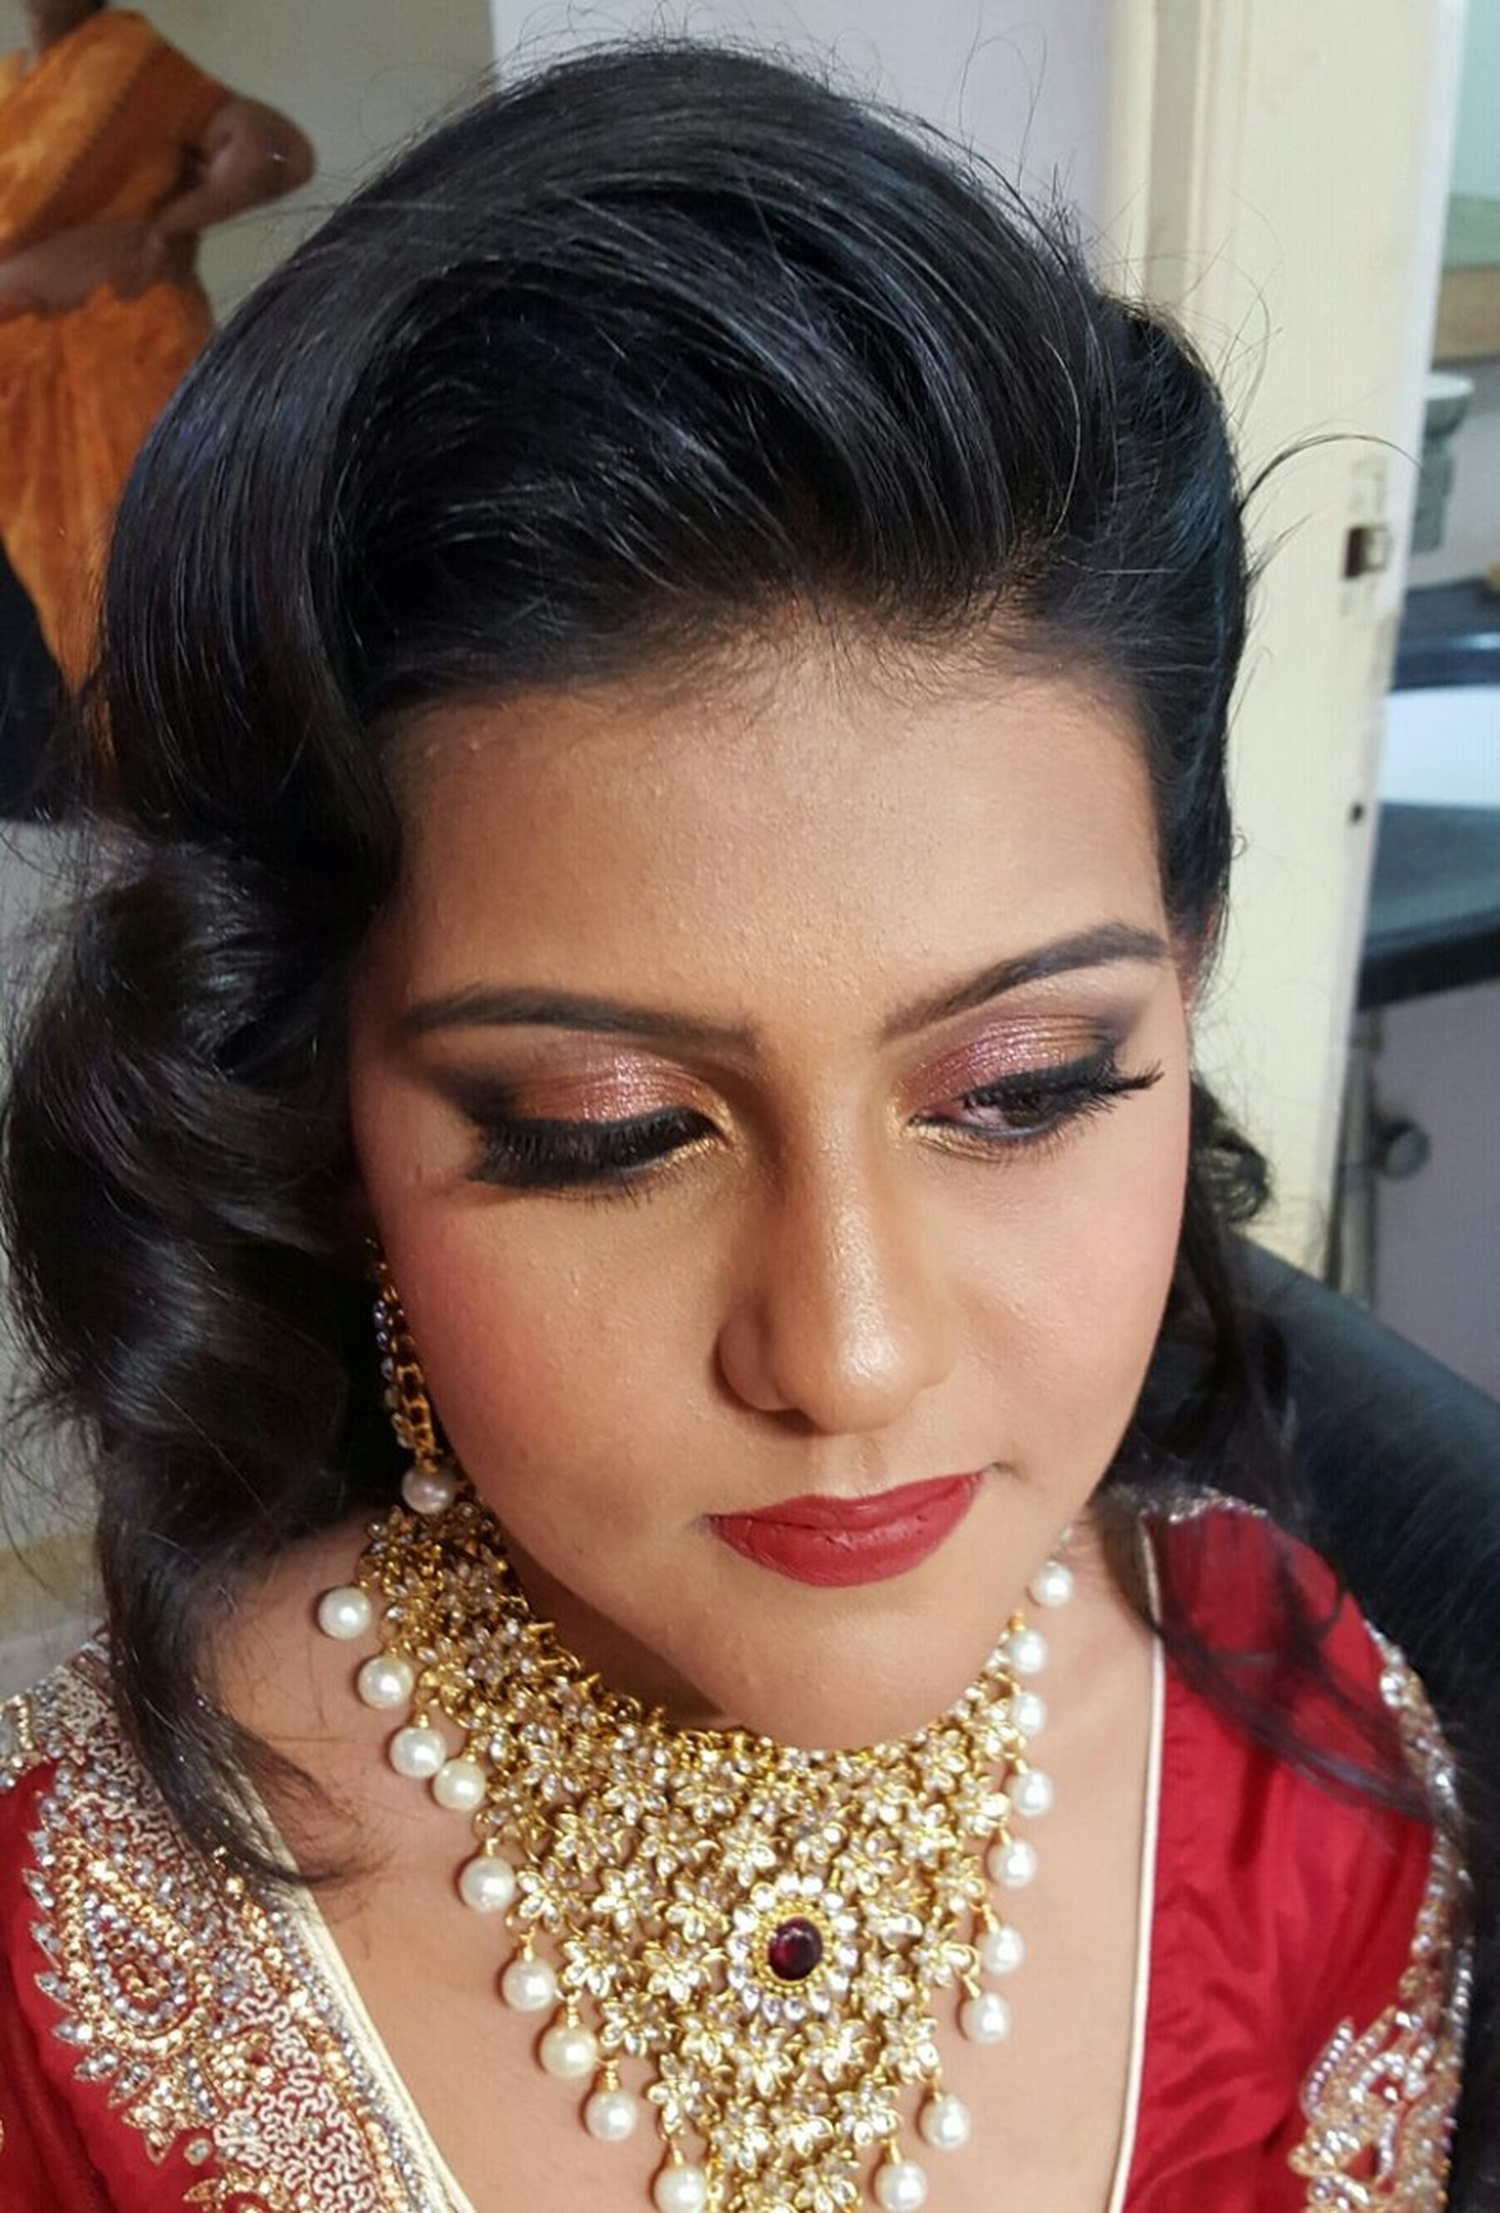 Anu Chugh Bridal Makeup Artist In Bangalore | WeddingZ